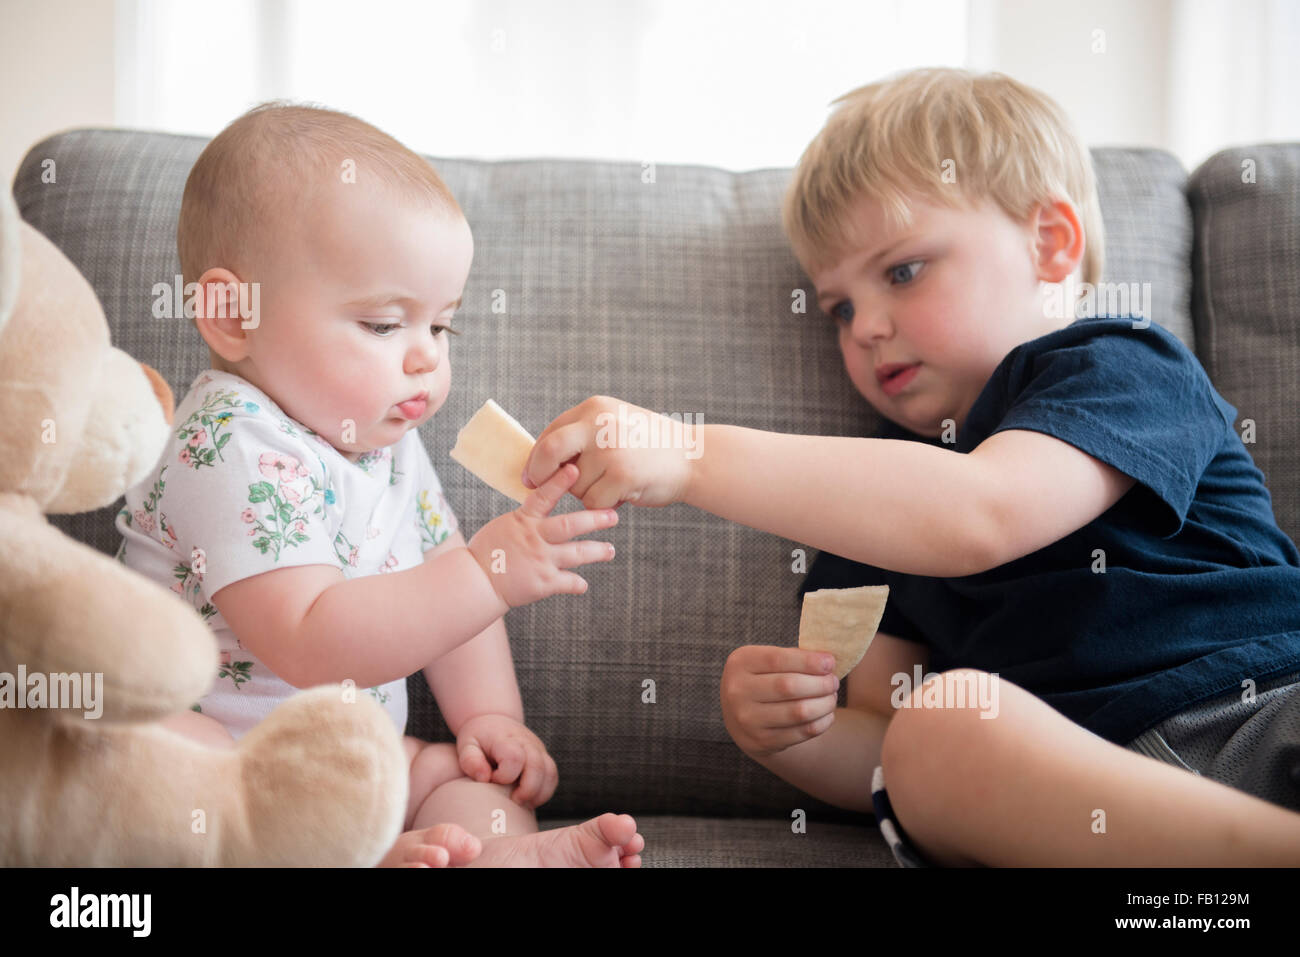 Brother (2-3) sharing crackers with baby sister (12-17 months) - Stock Image